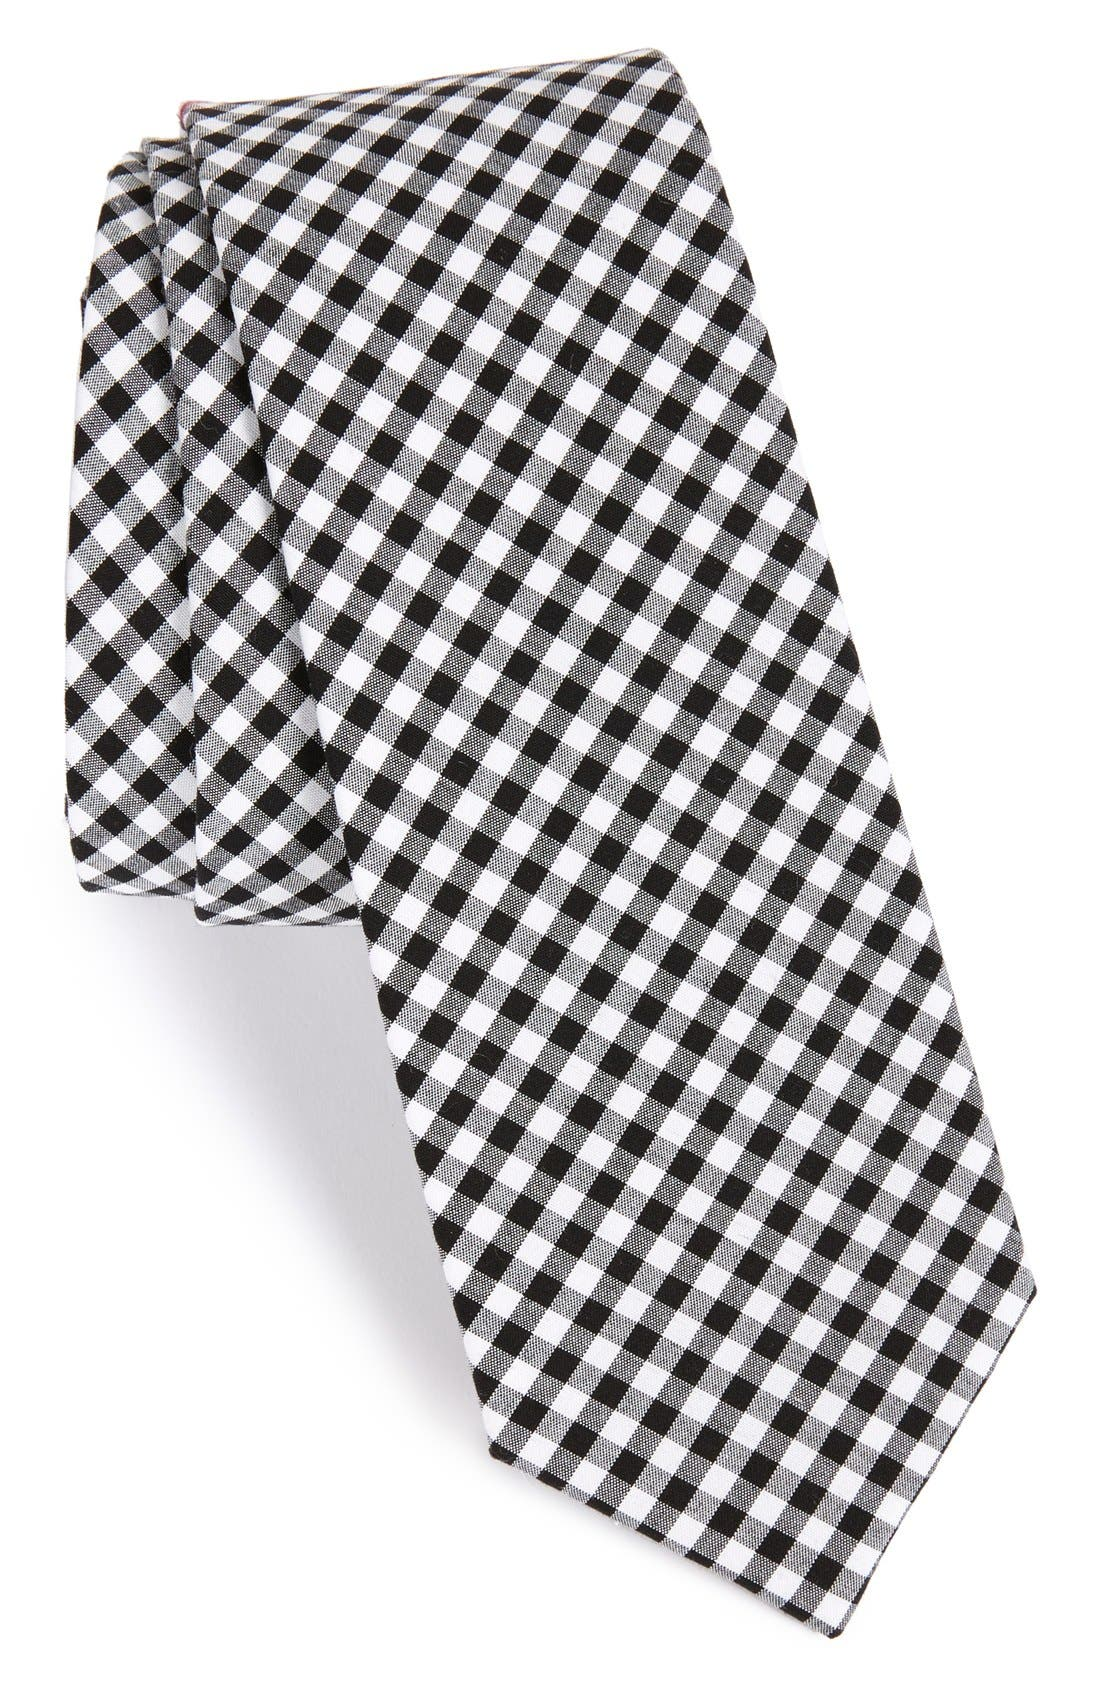 Alternate Image 1 Selected - The Tie Bar Check Cotton Tie (Online Only)